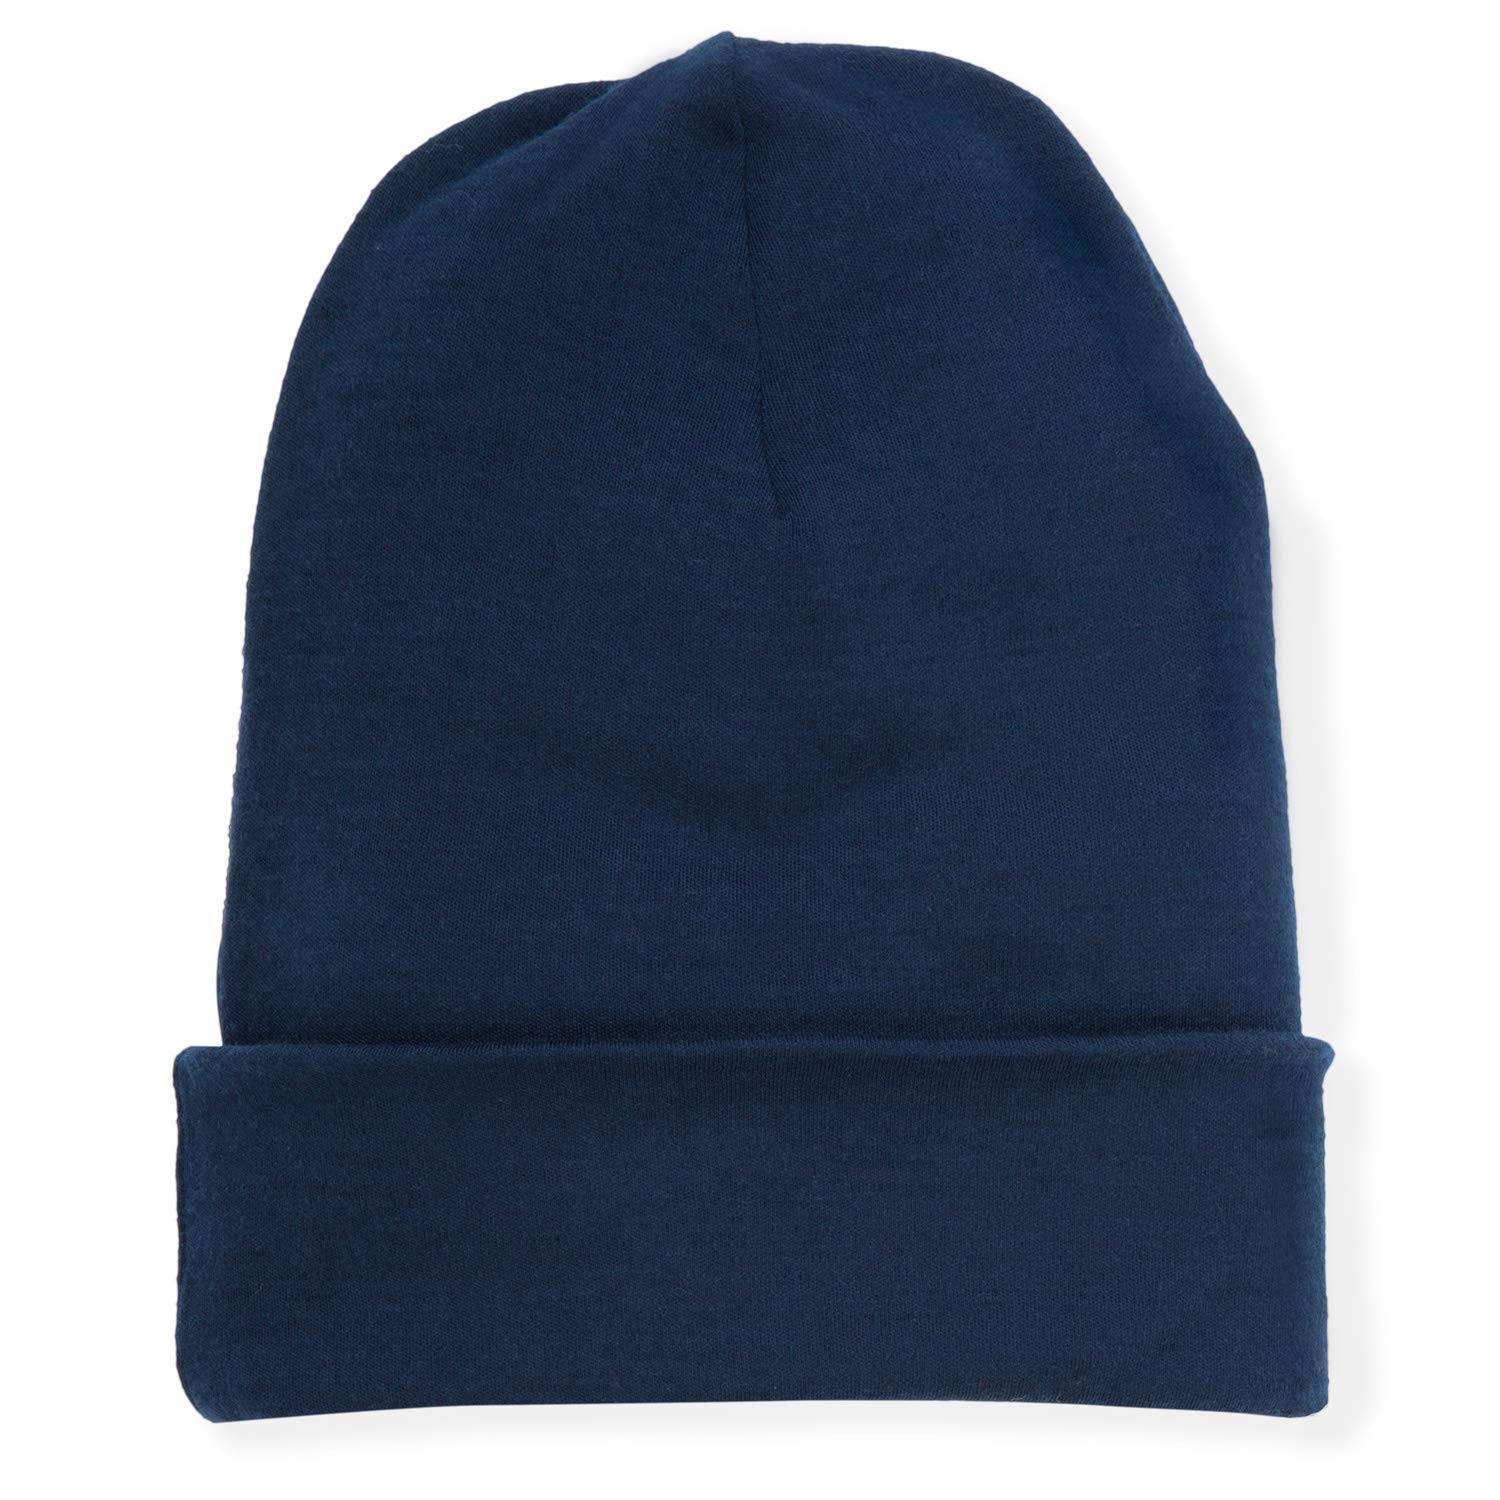 MERIWOOL Unisex Merino Wool Cuff Beanie Hat - Choose Your Color